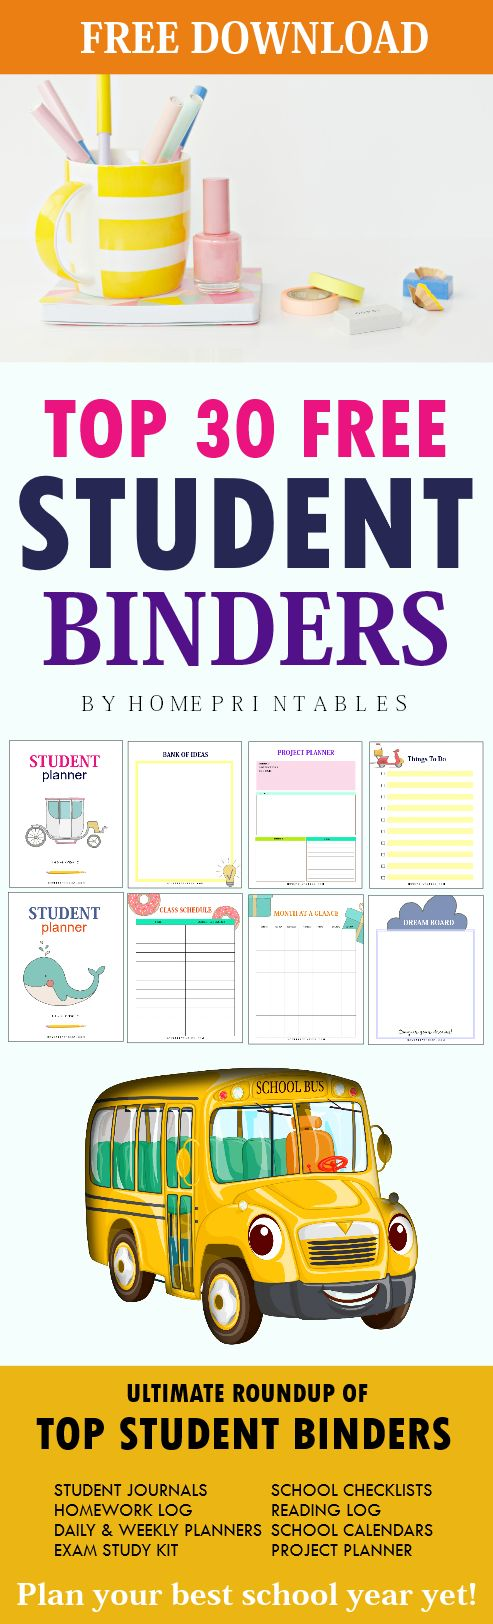 Discover the best free student binder printables available online. Yes, they're all unbelievably free! #schoolbinder #school #planner #printables #homeprintables